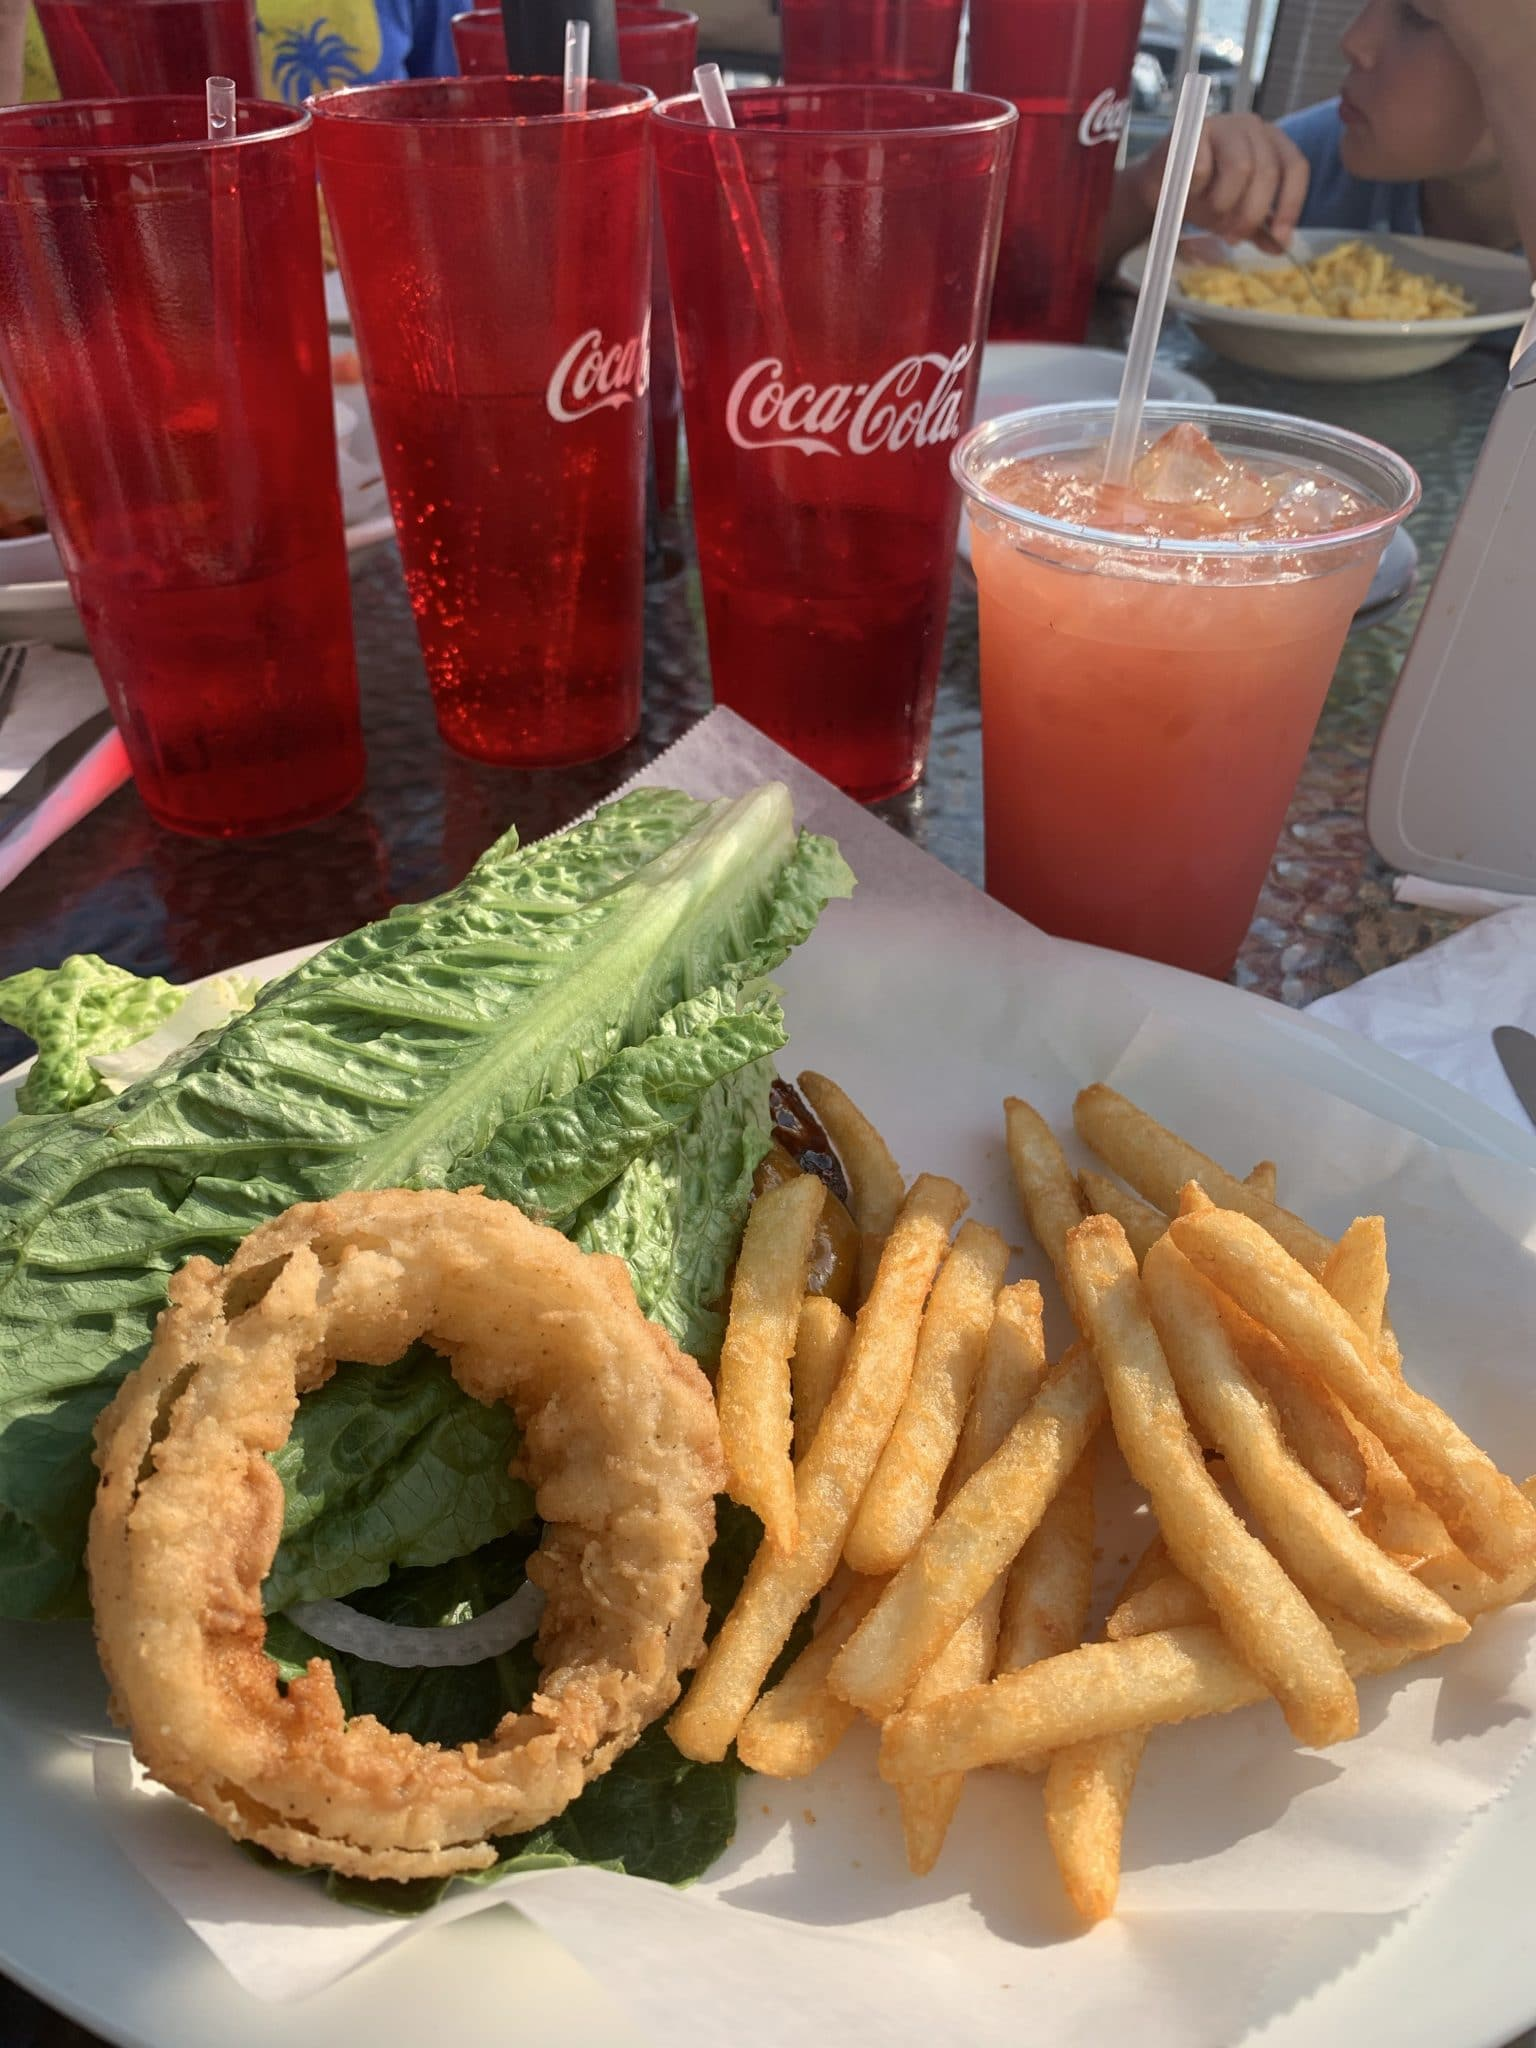 Toucans Bar and Grill Lake Norman, Mooresville North Carolina Lake restaurants, Stilettos and Diapers